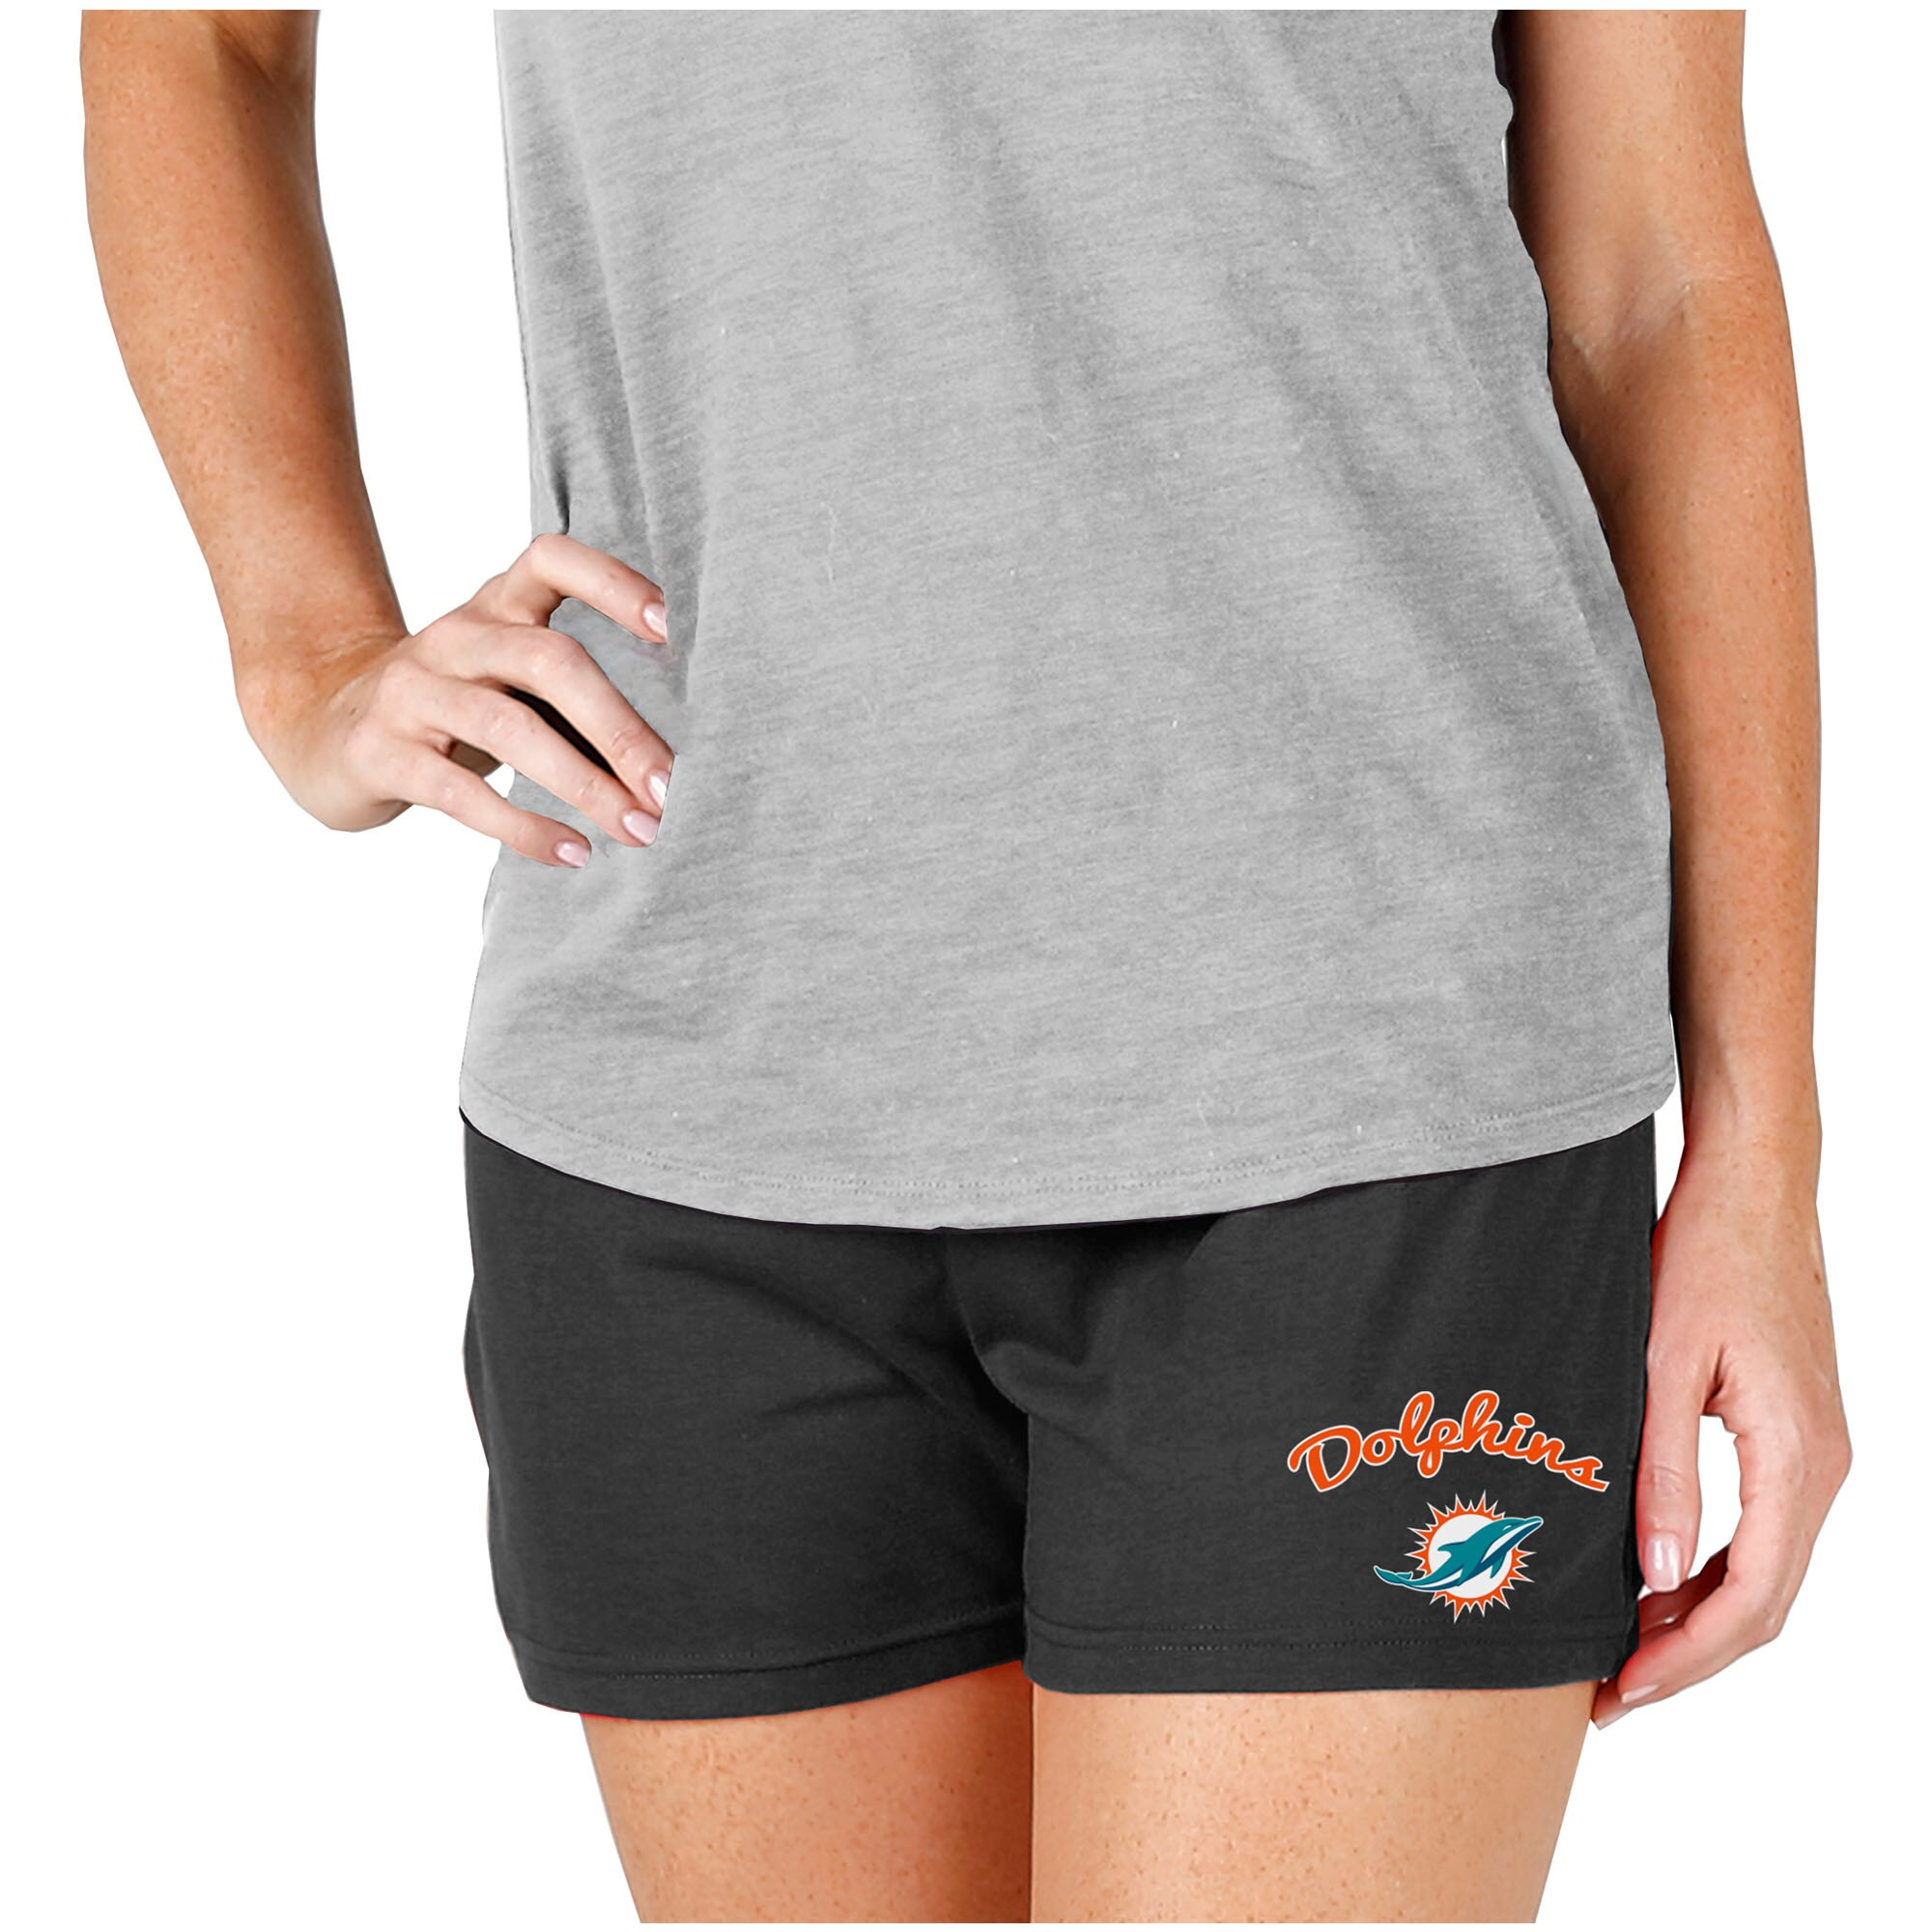 Miami Dolphins Concepts Sport Women's Knit Shorts - Charcoal